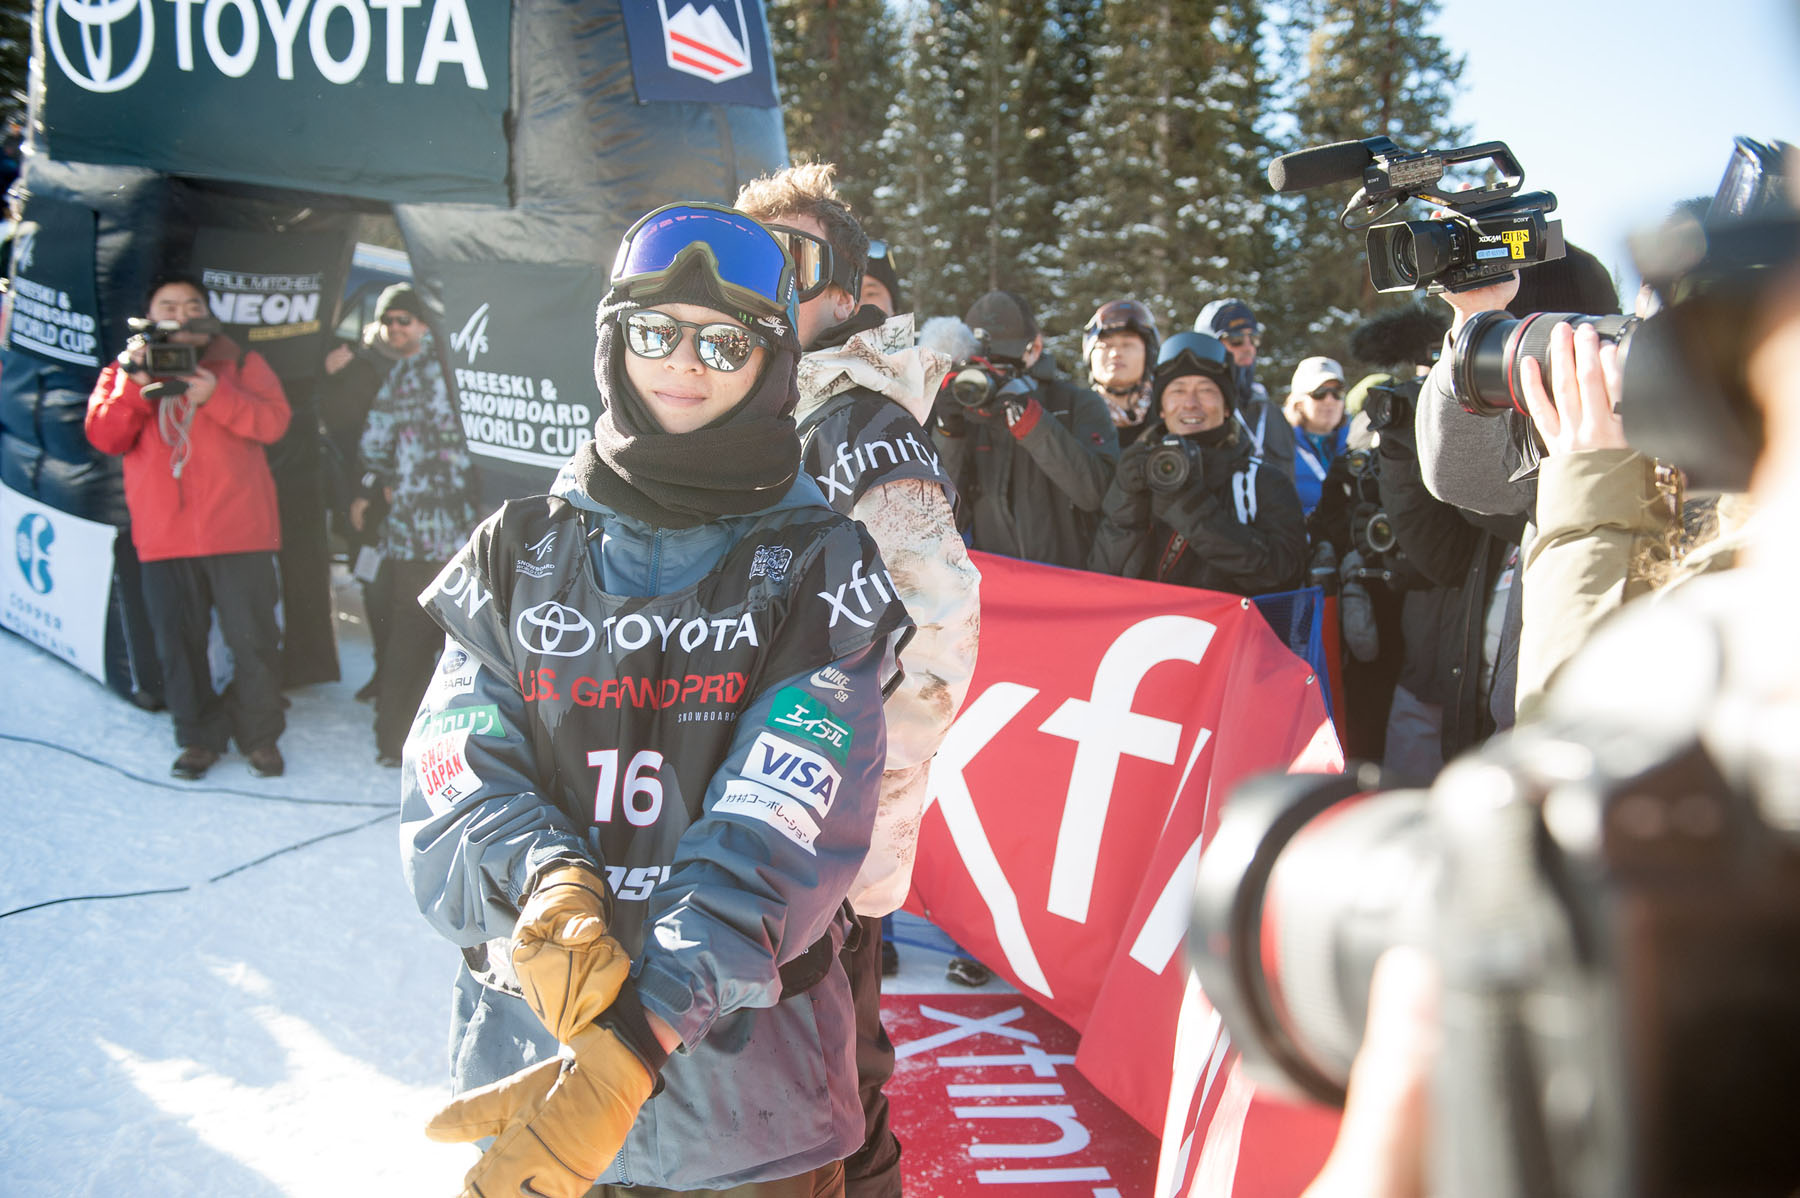 64b85ea1c628 Monster Energy s Ayumu Hirano Wins Toyota U.S. Grand Prix Halfpipe of  Snowboarding at Copper Mountain ...